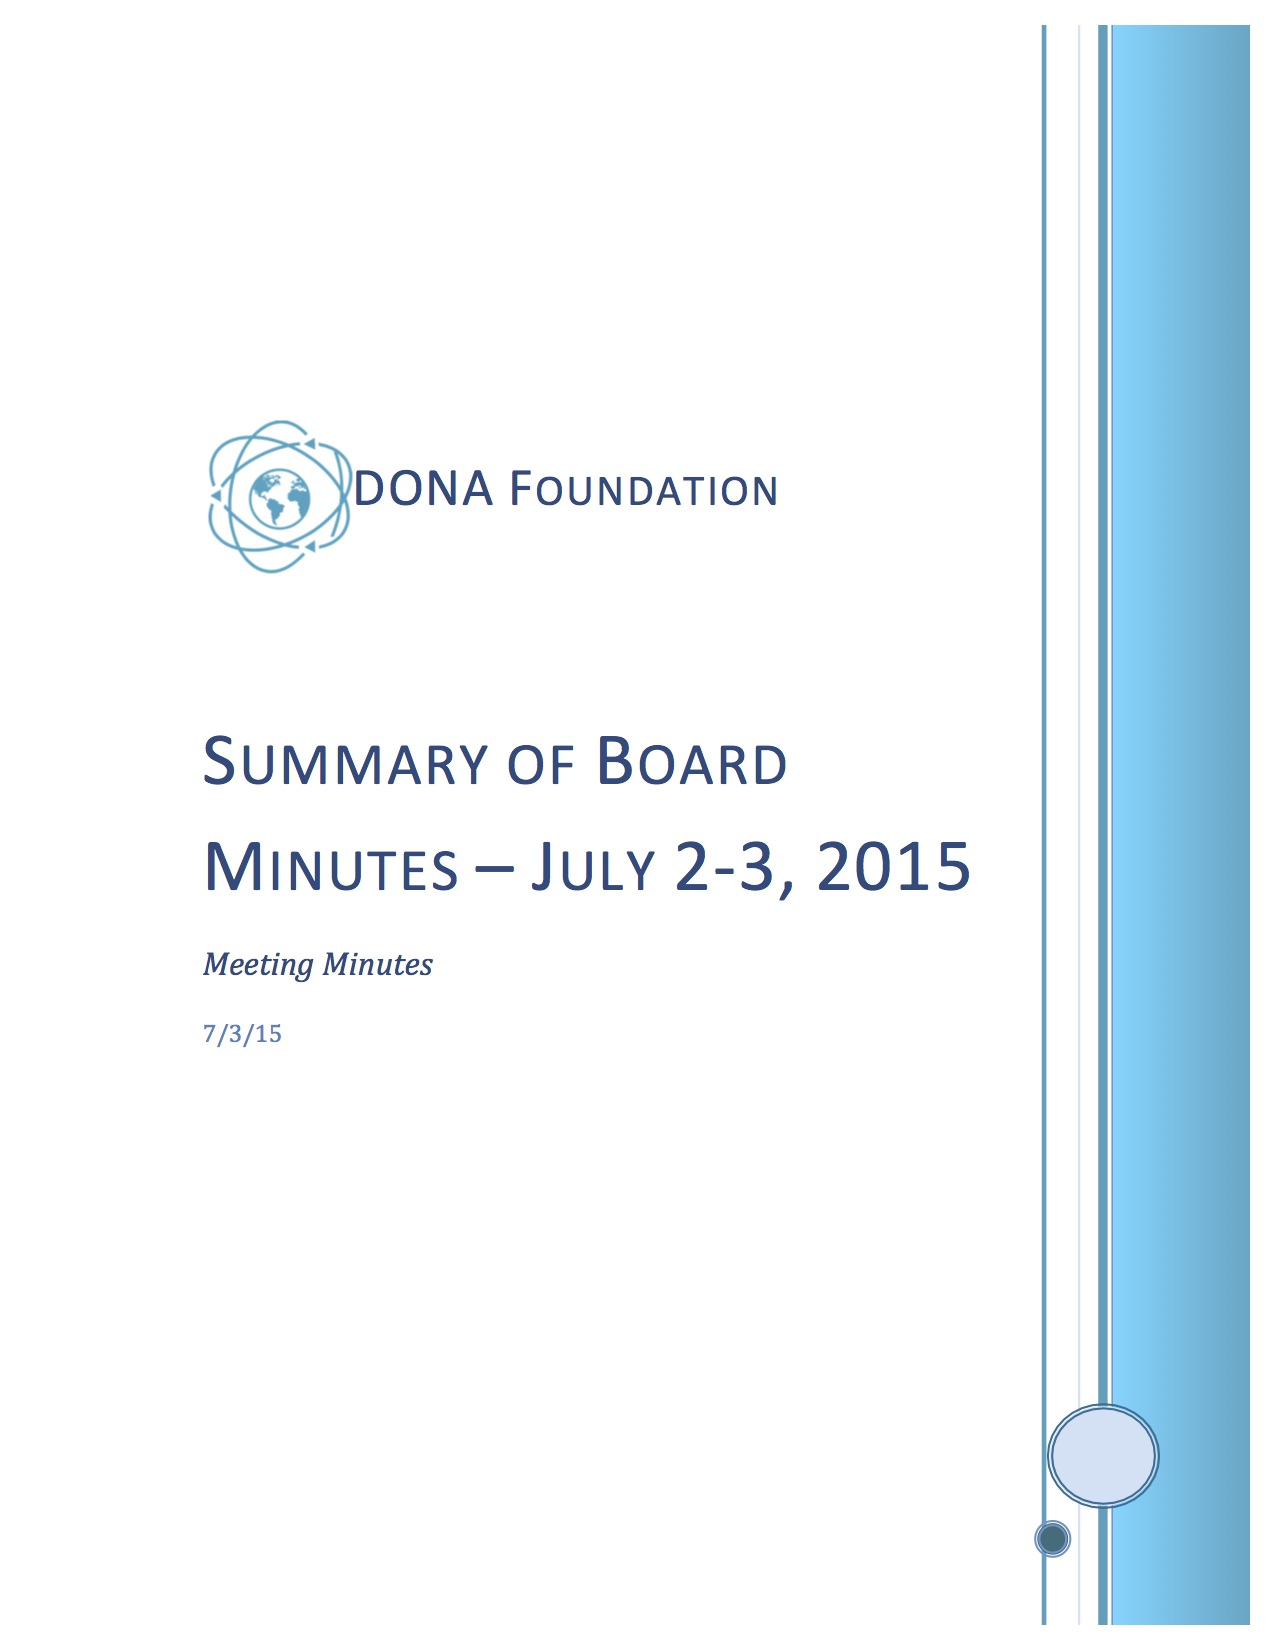 Summary of Board Minutes July 2-3, 2015